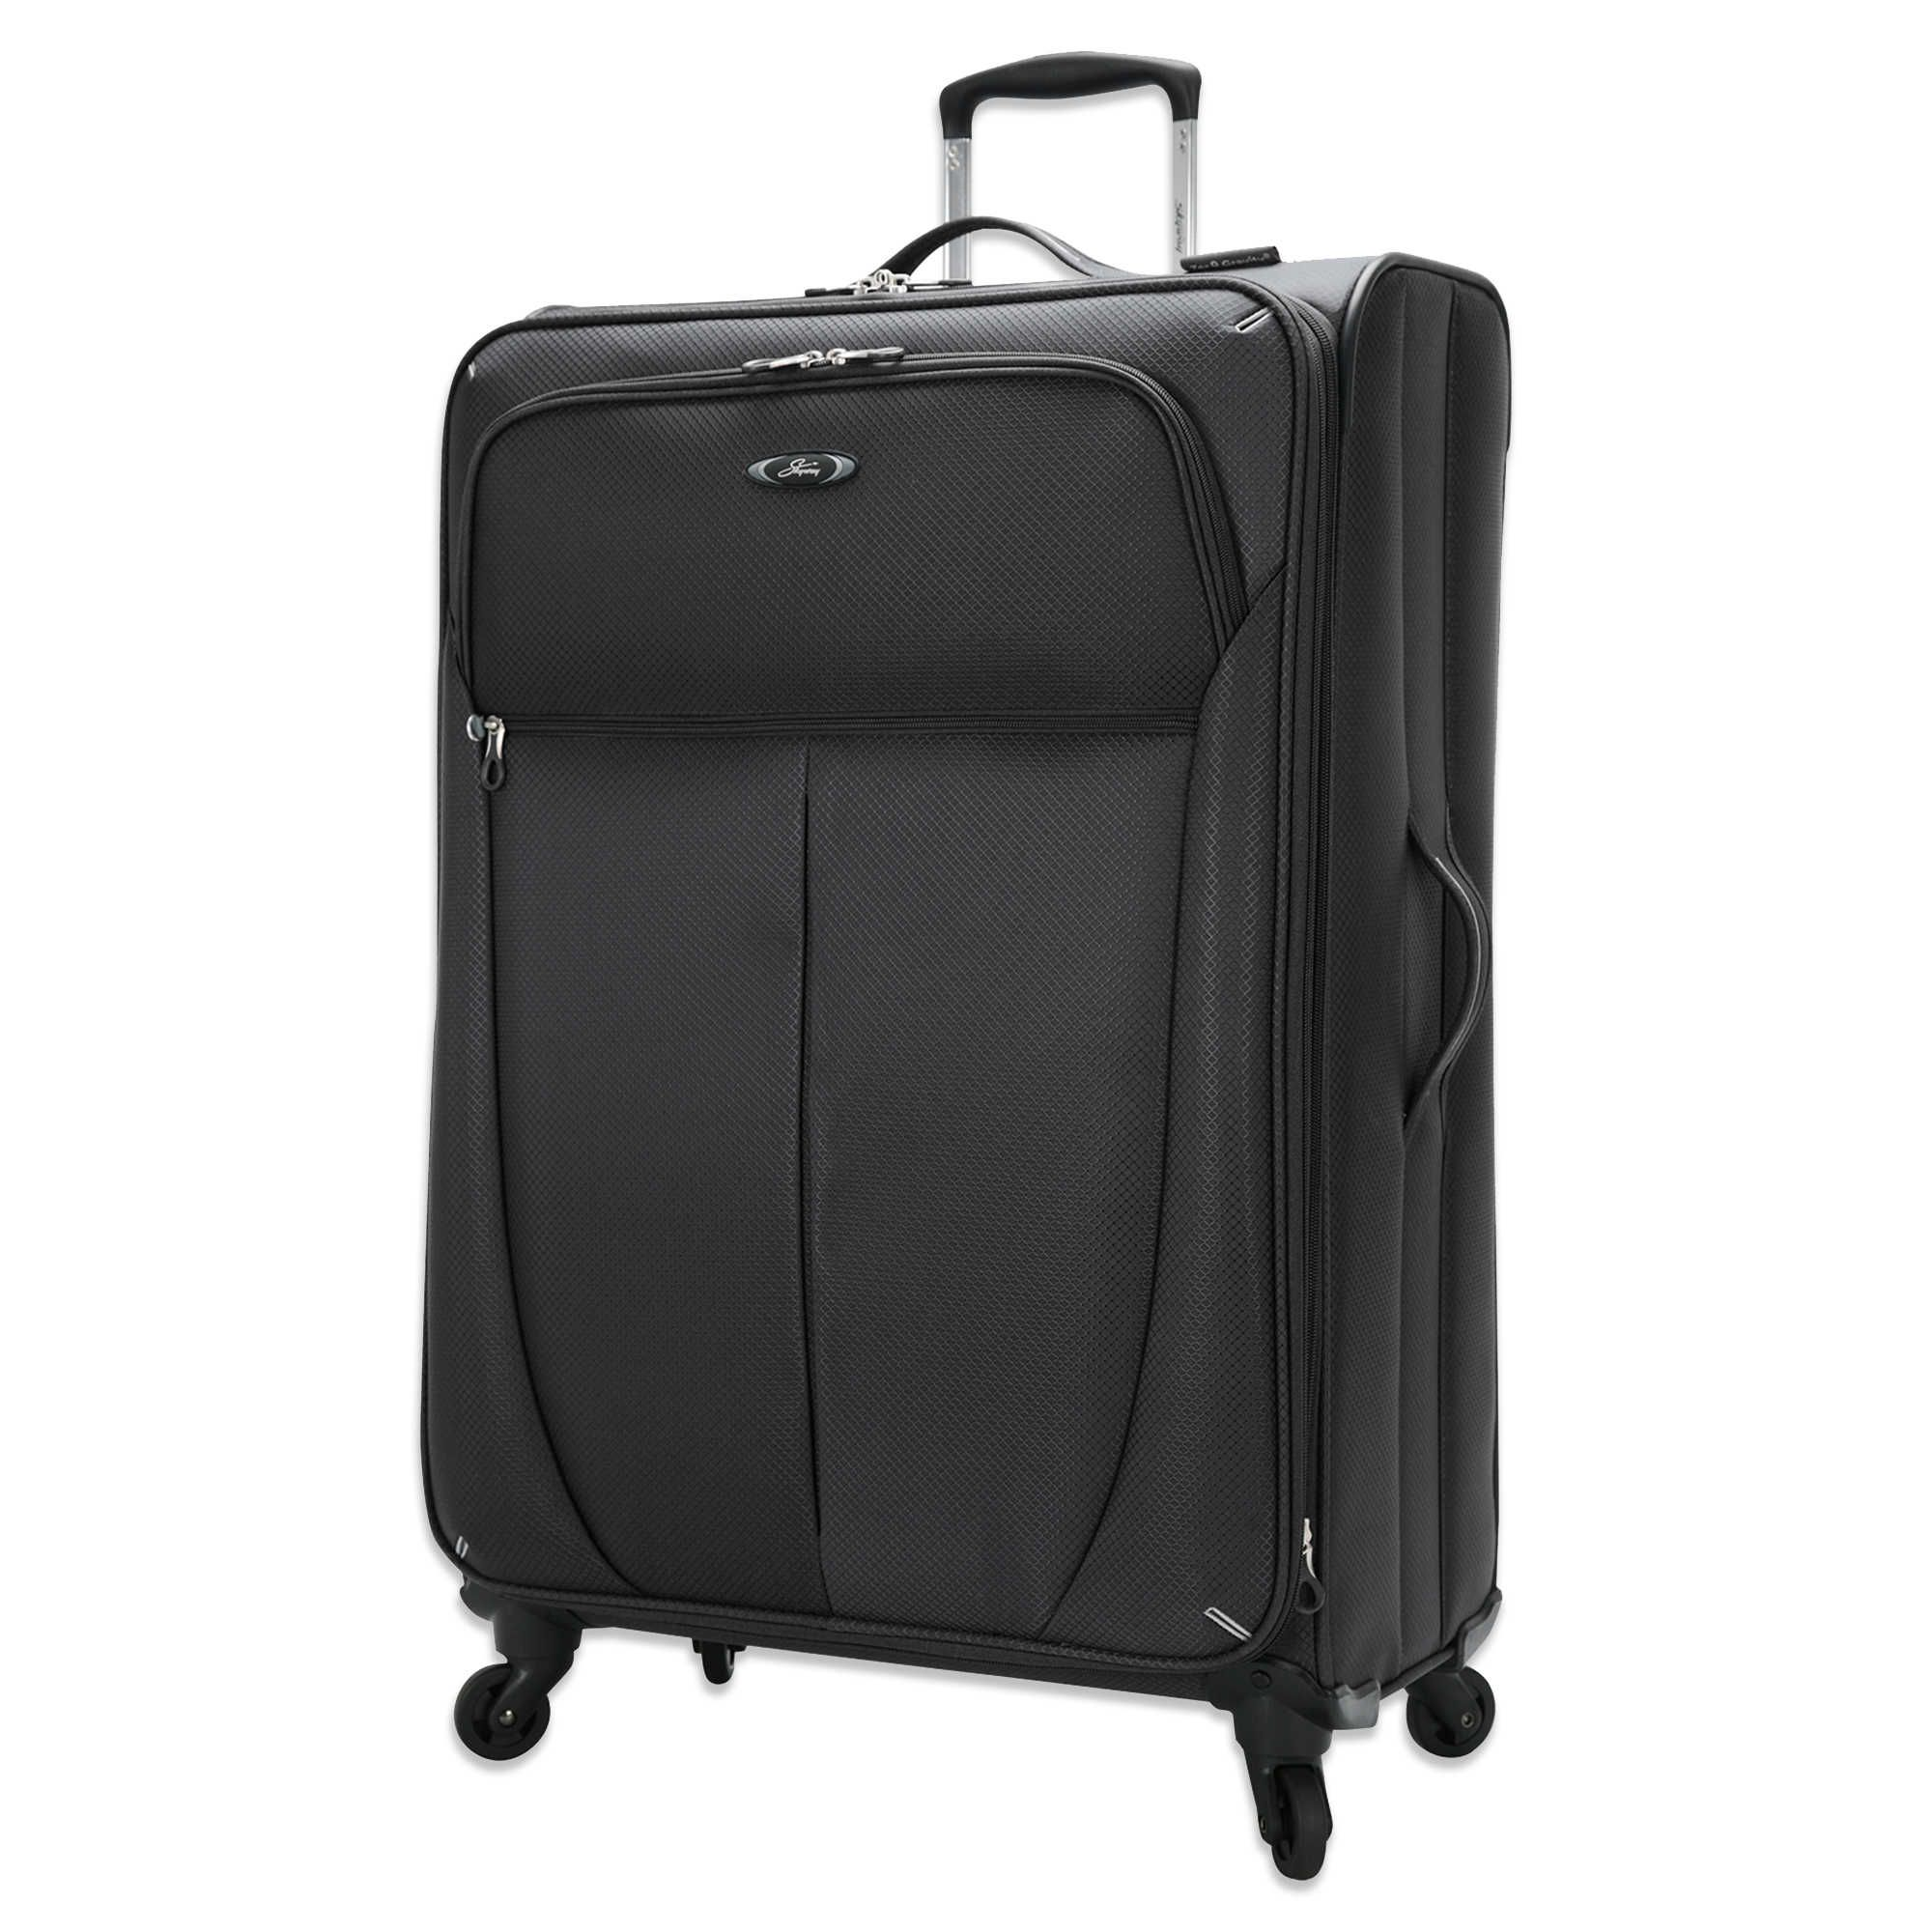 The 10 Best Lightweight Luggage Items to Buy in 2019